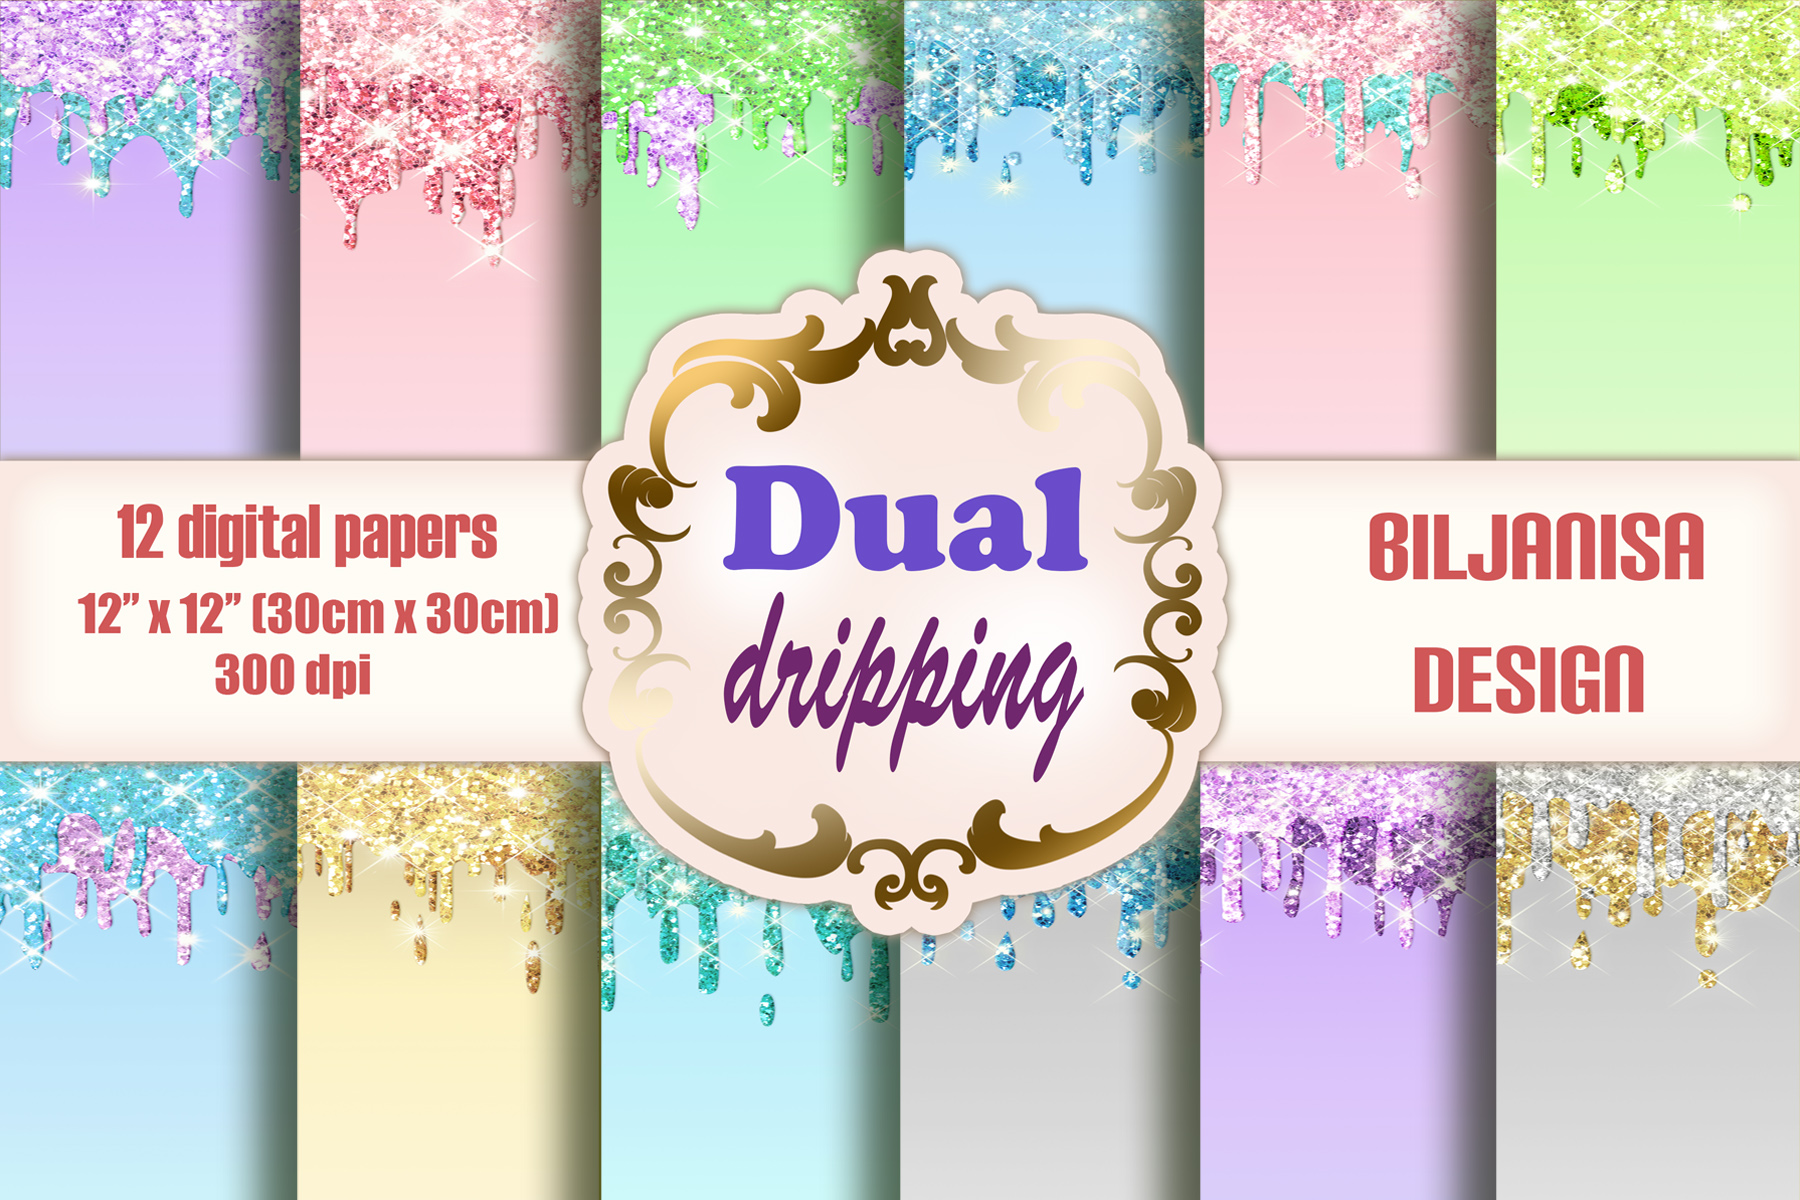 Dual dripping example image 1